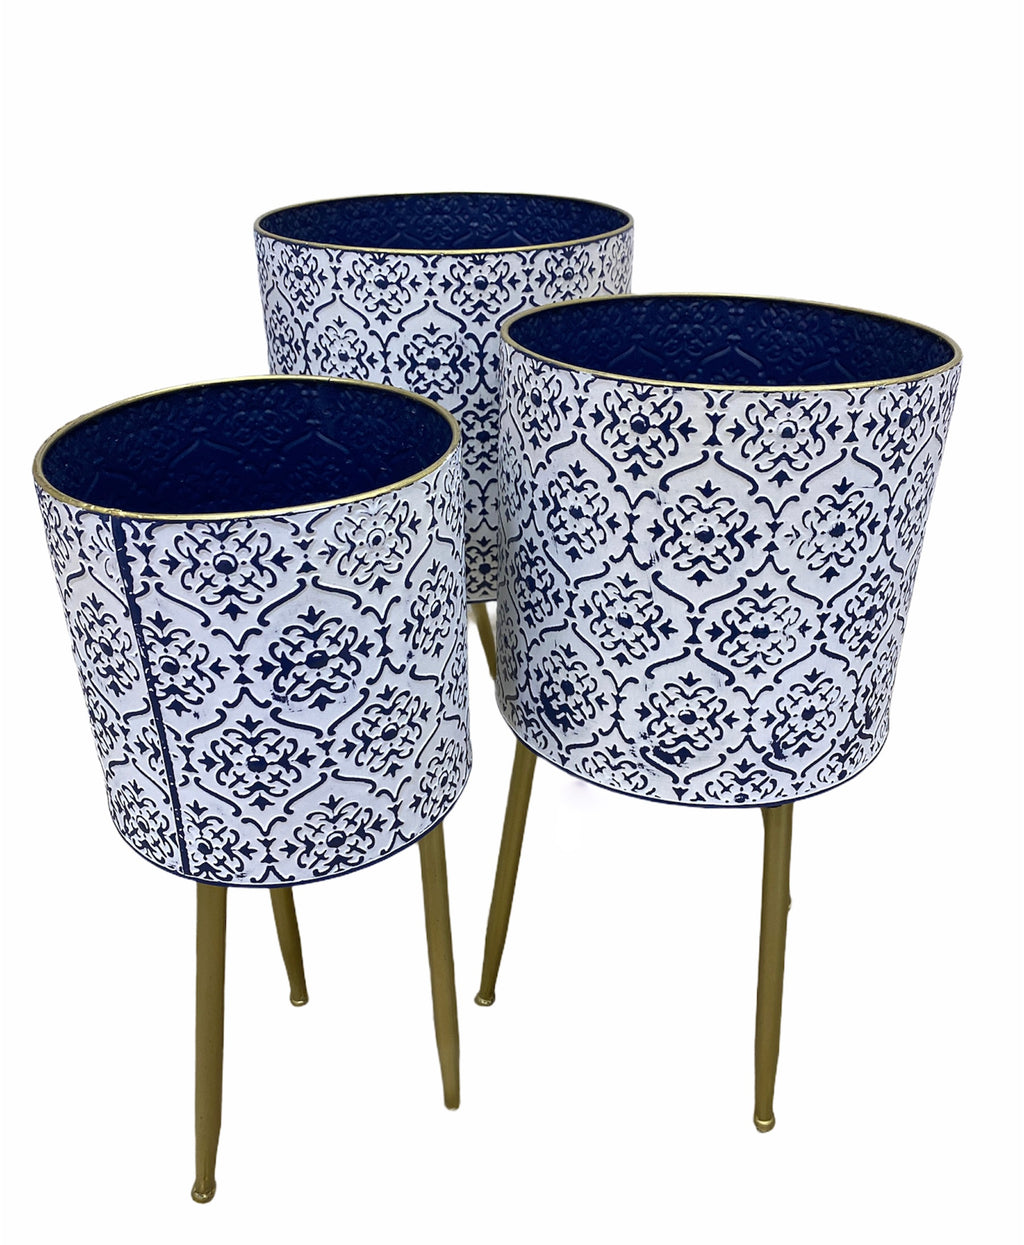 Blue/White Moroccan Pot with Stand